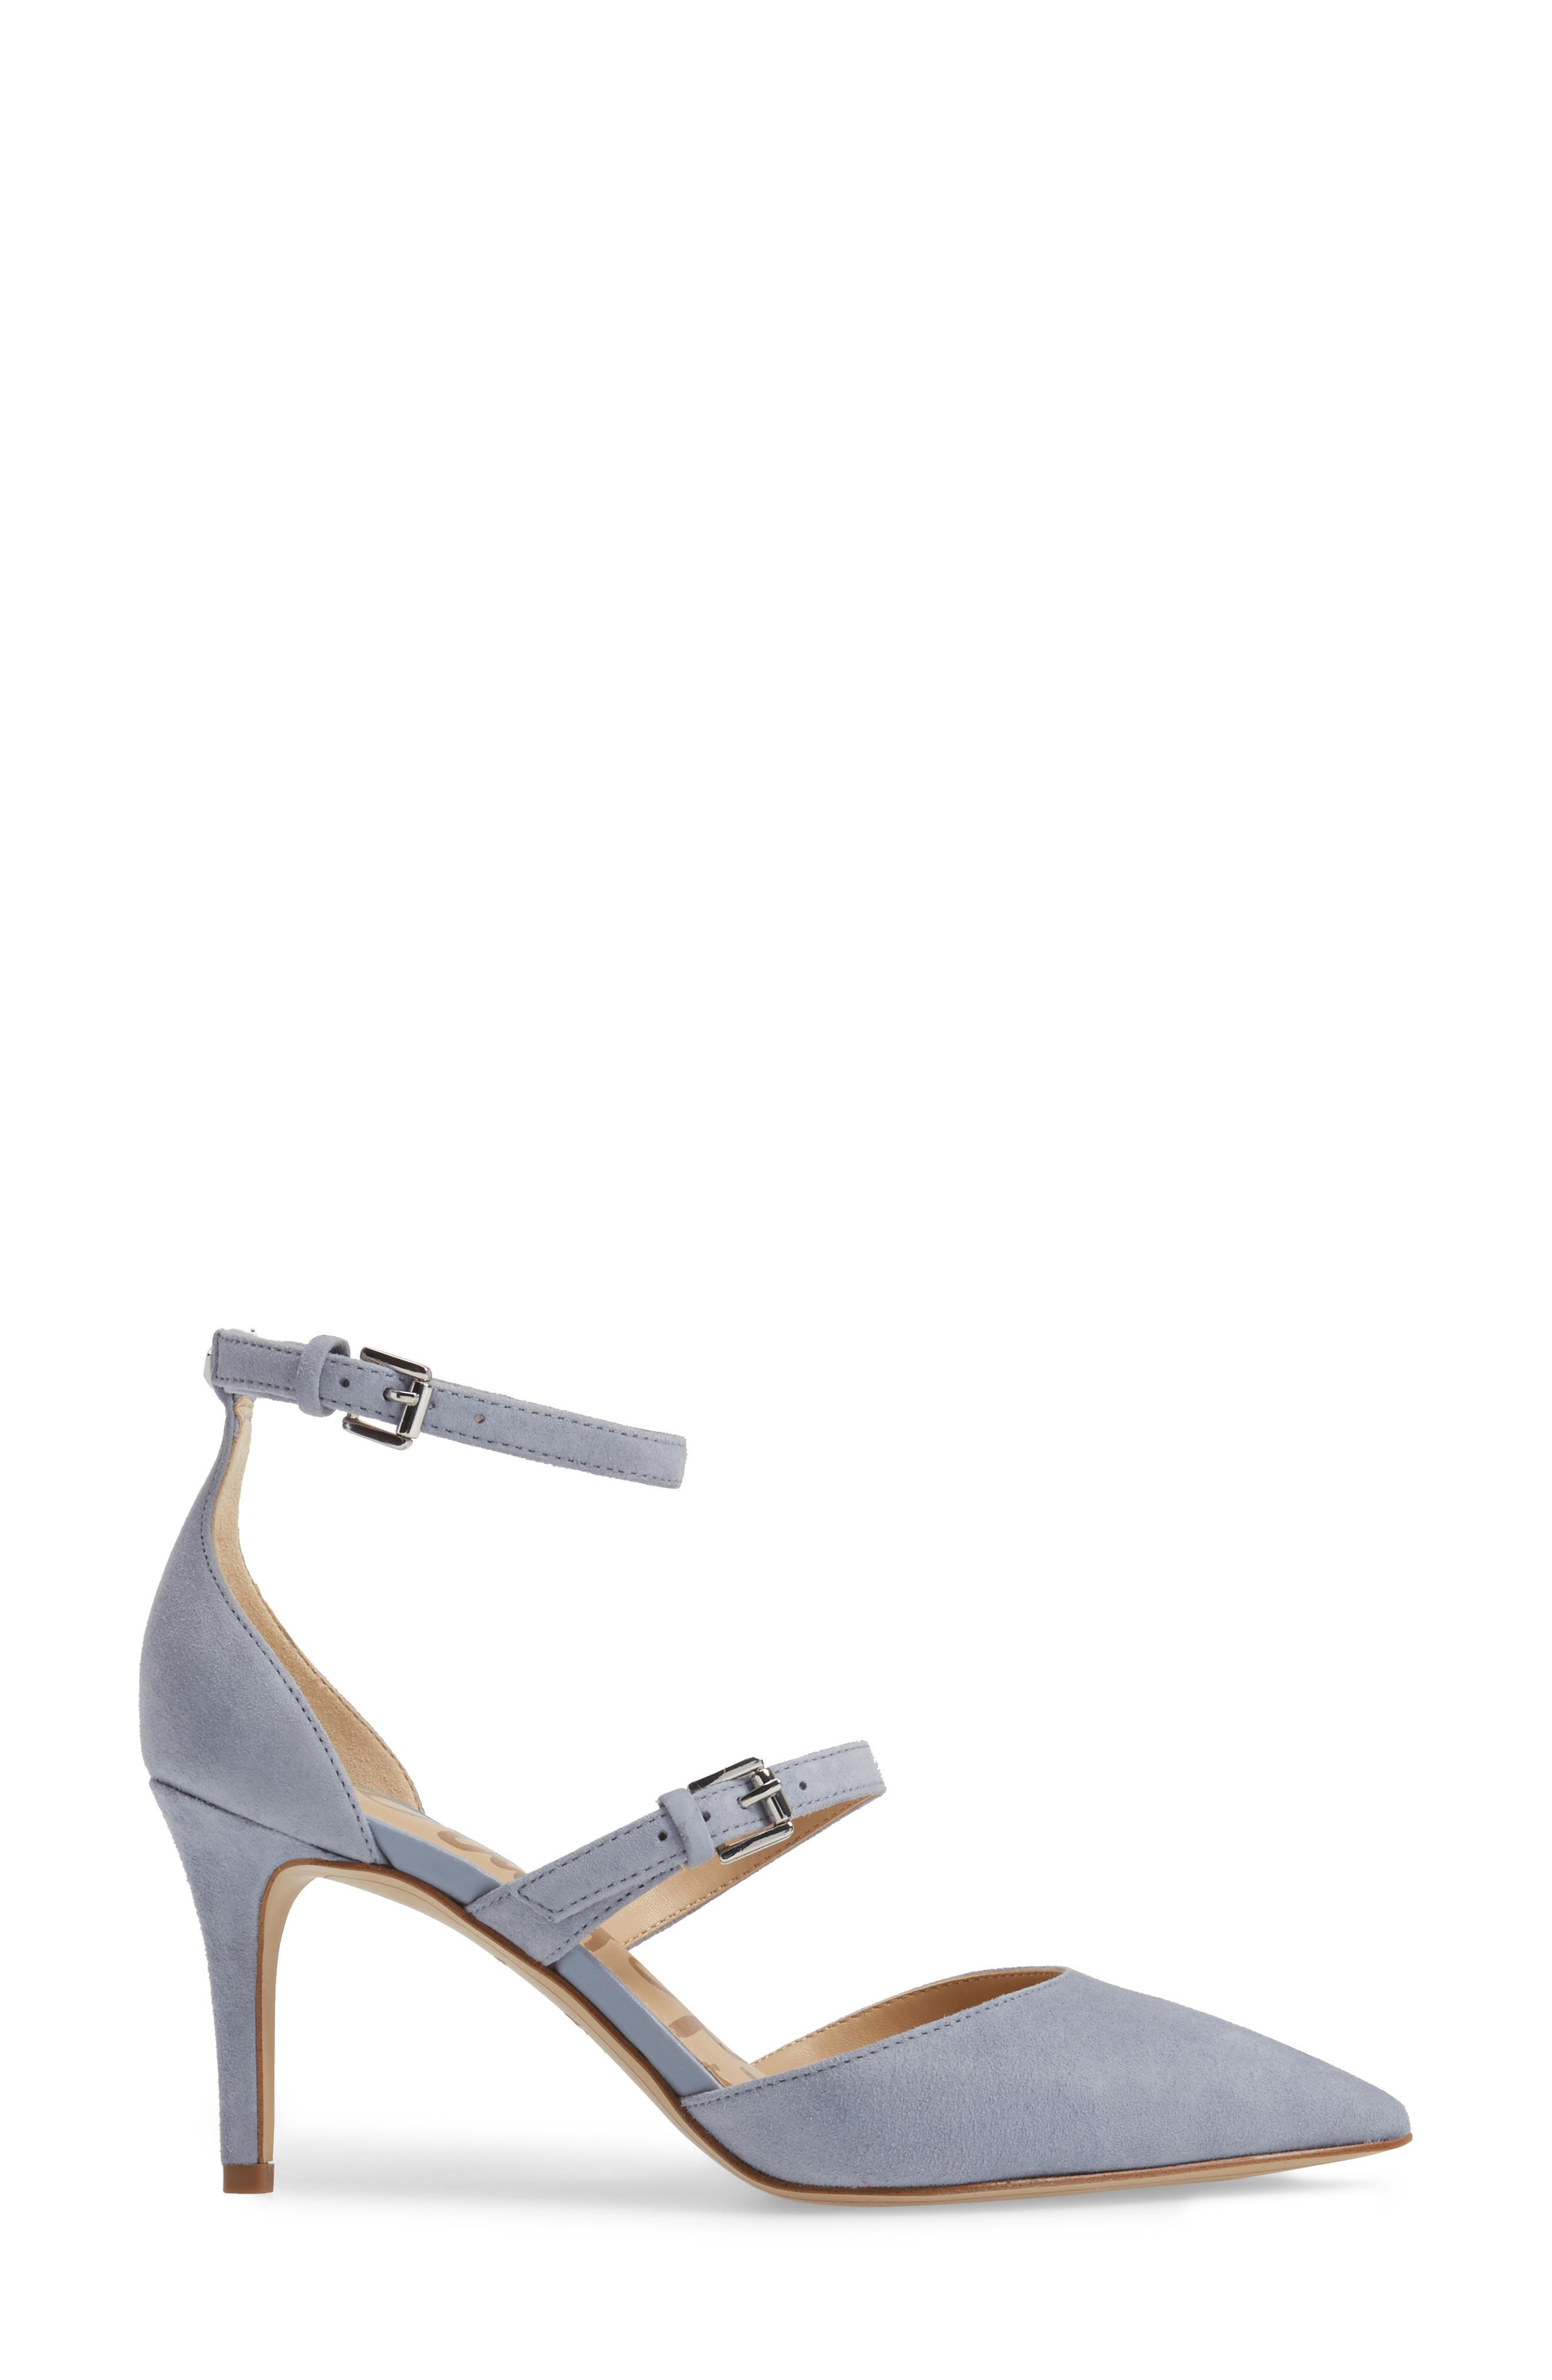 Alternate Image 3  - Sam Edelman 'Thea' Strappy Pump (Women)